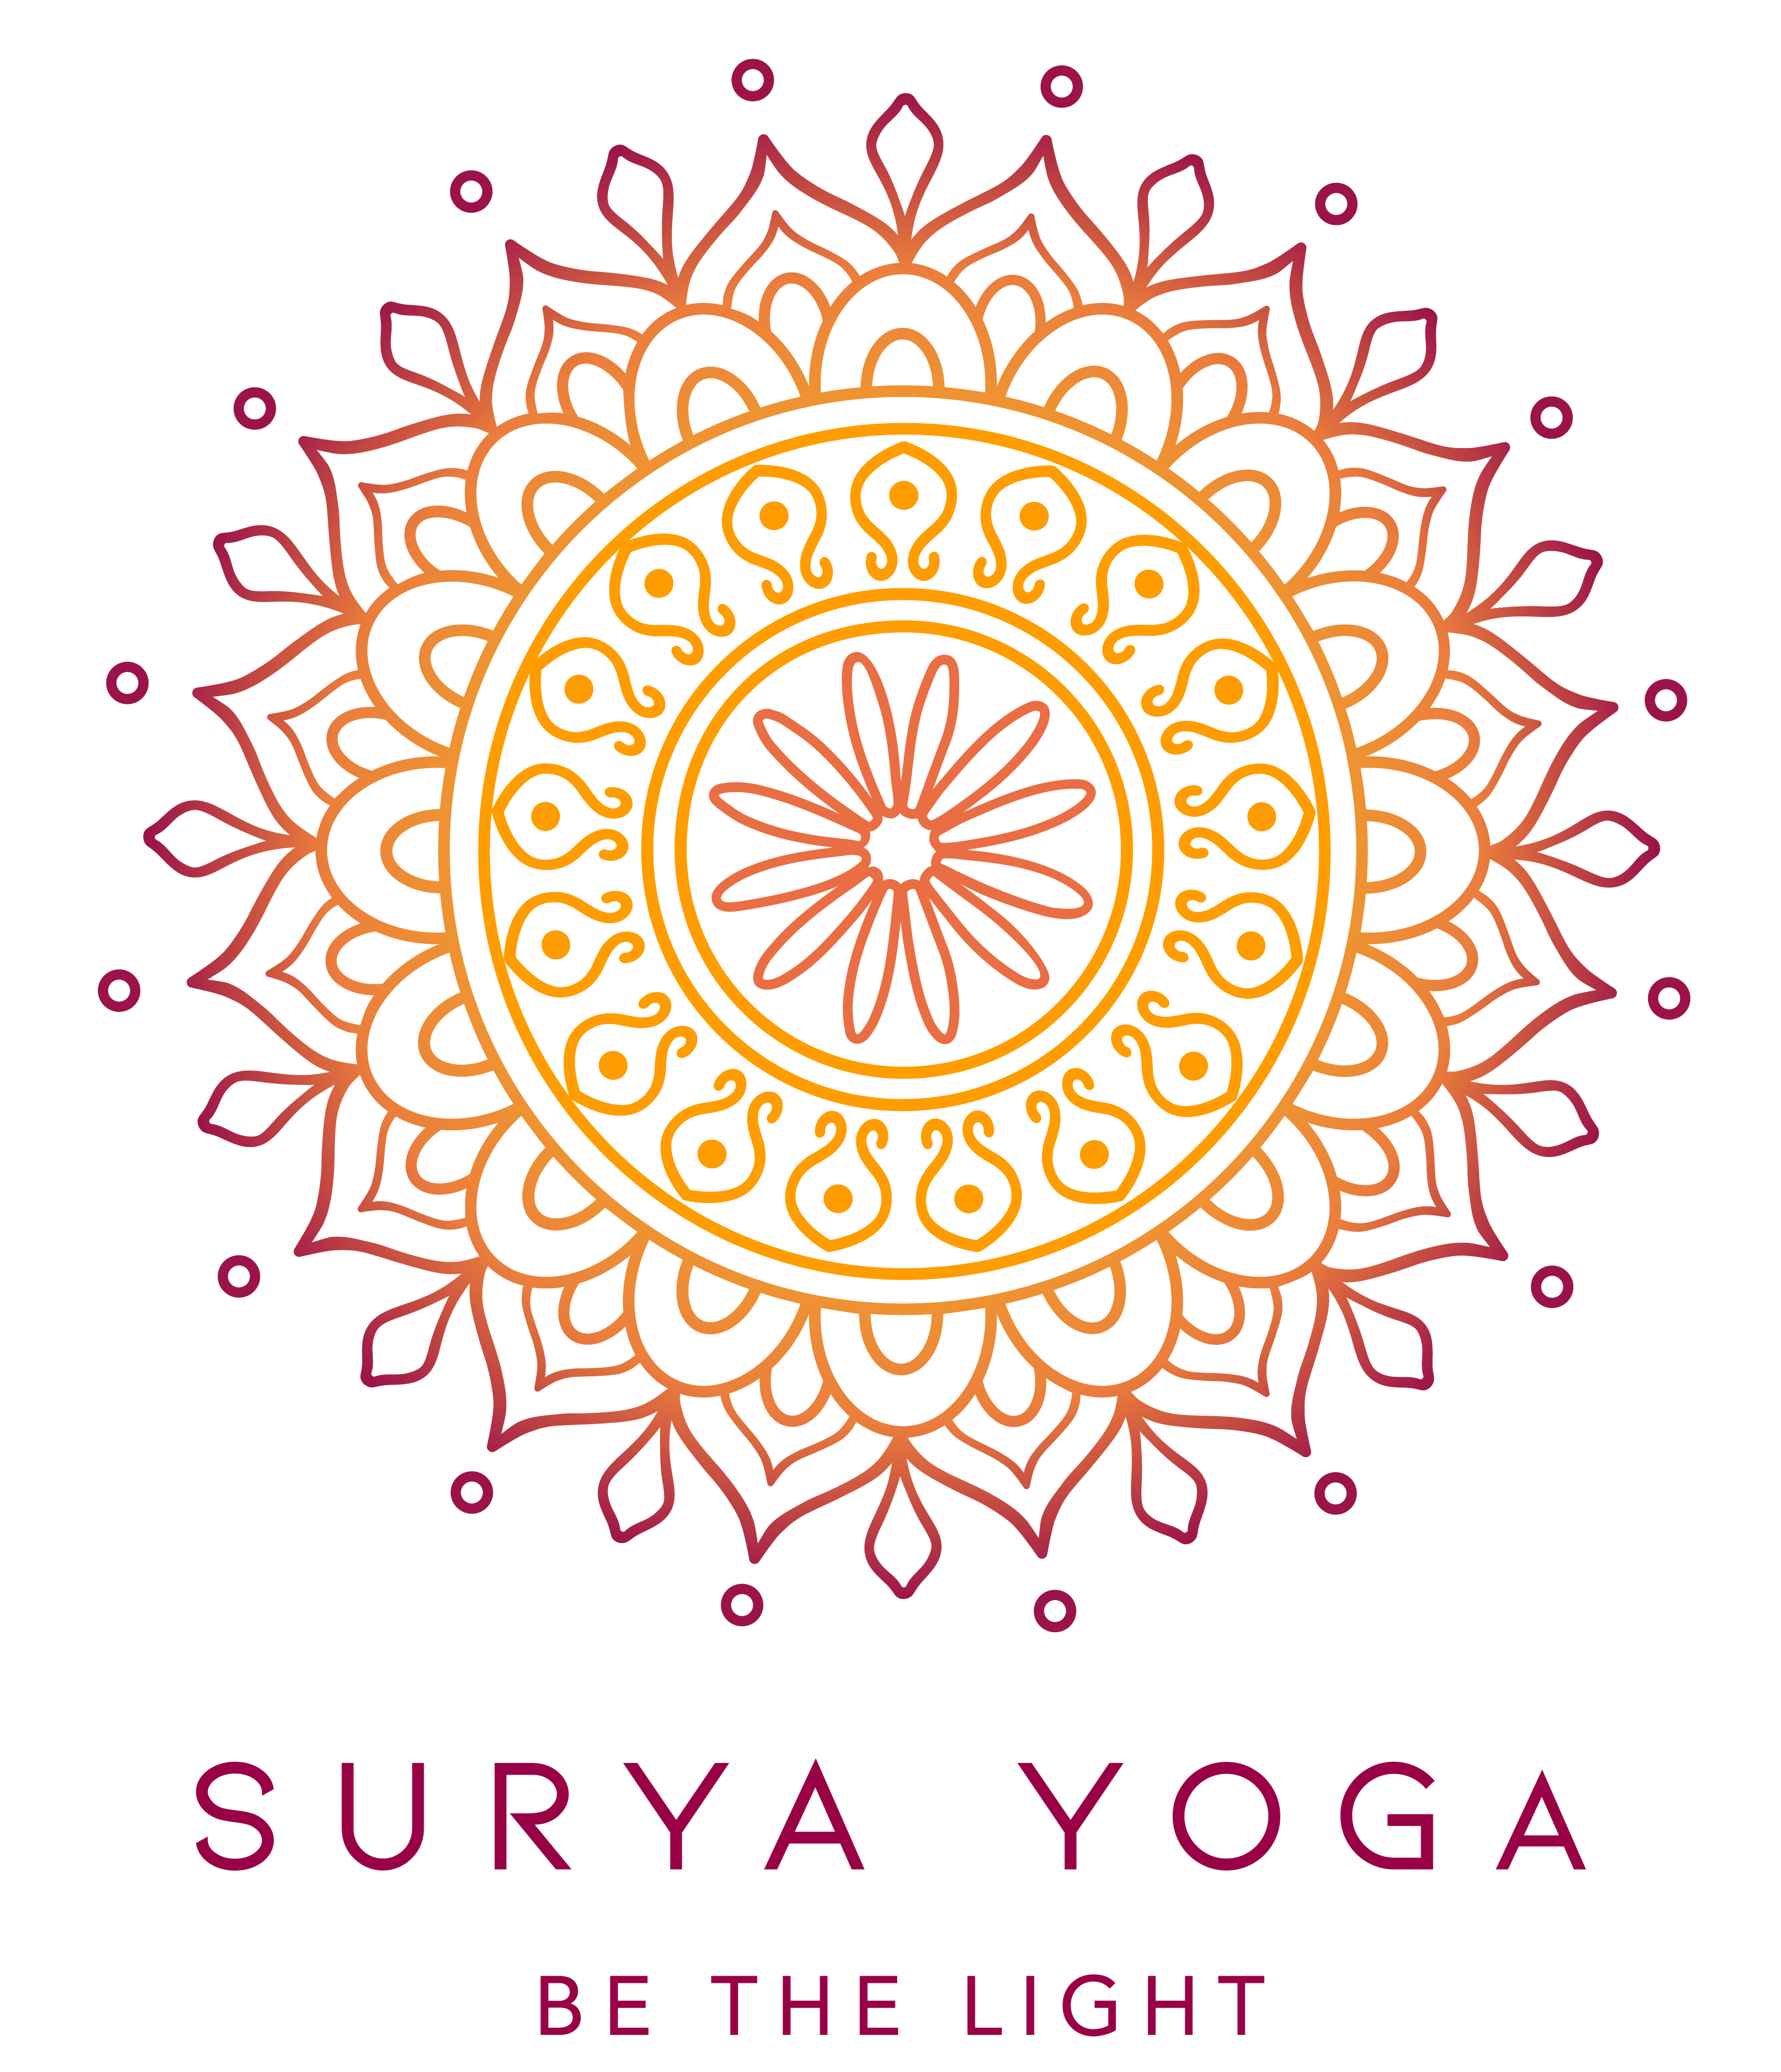 Surya_Yoga_color gradient-01